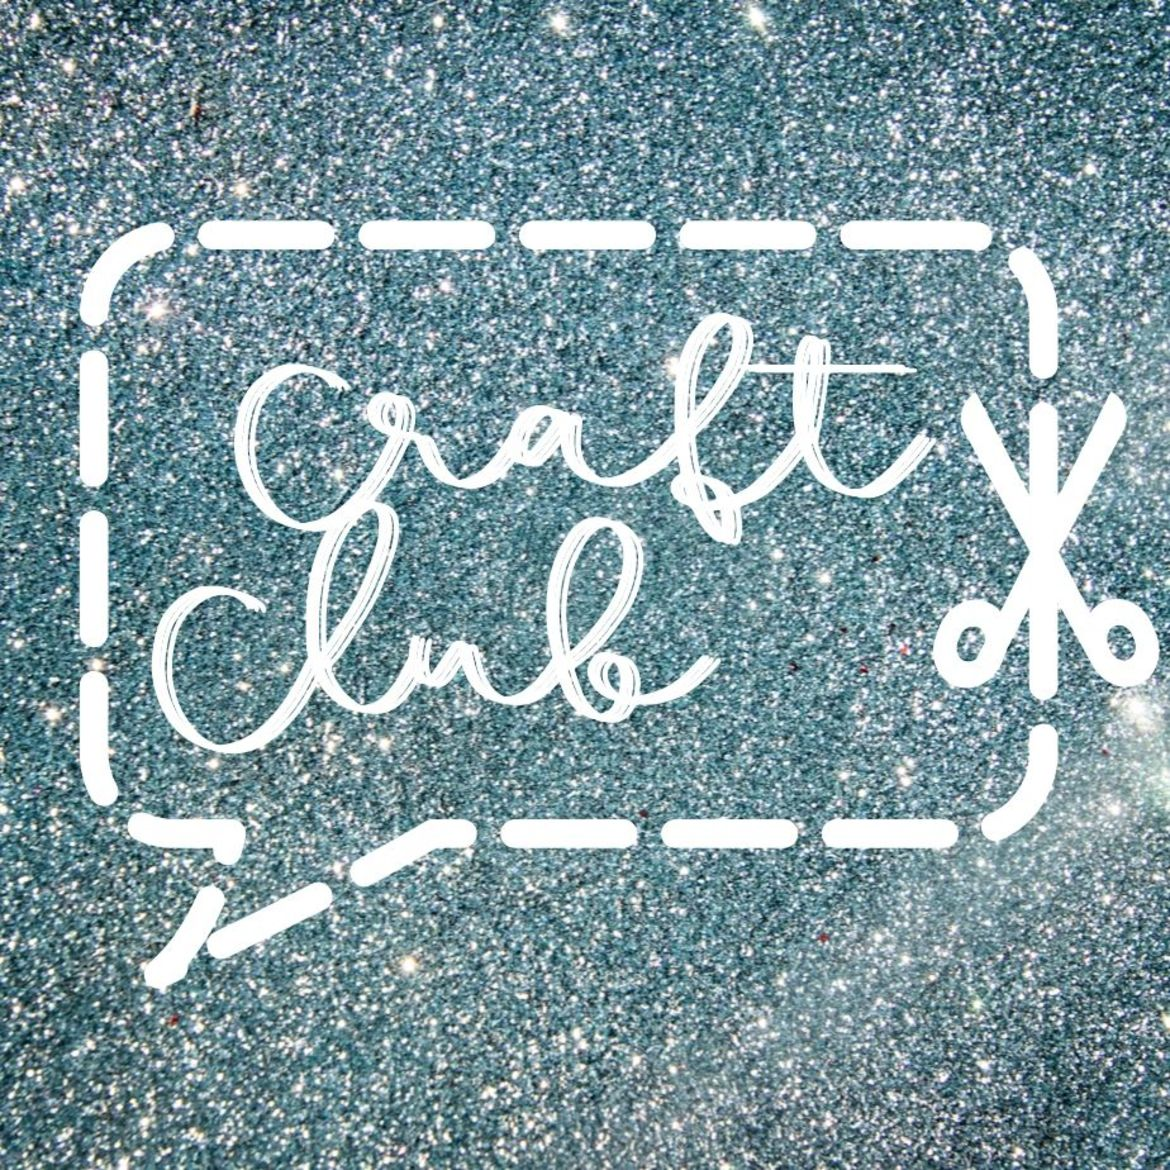 "Cover Photo: The Catapult Craft Club logo has a blue sparkly background with a speech bubble cut out with scissors around the words ""Craft Club"""